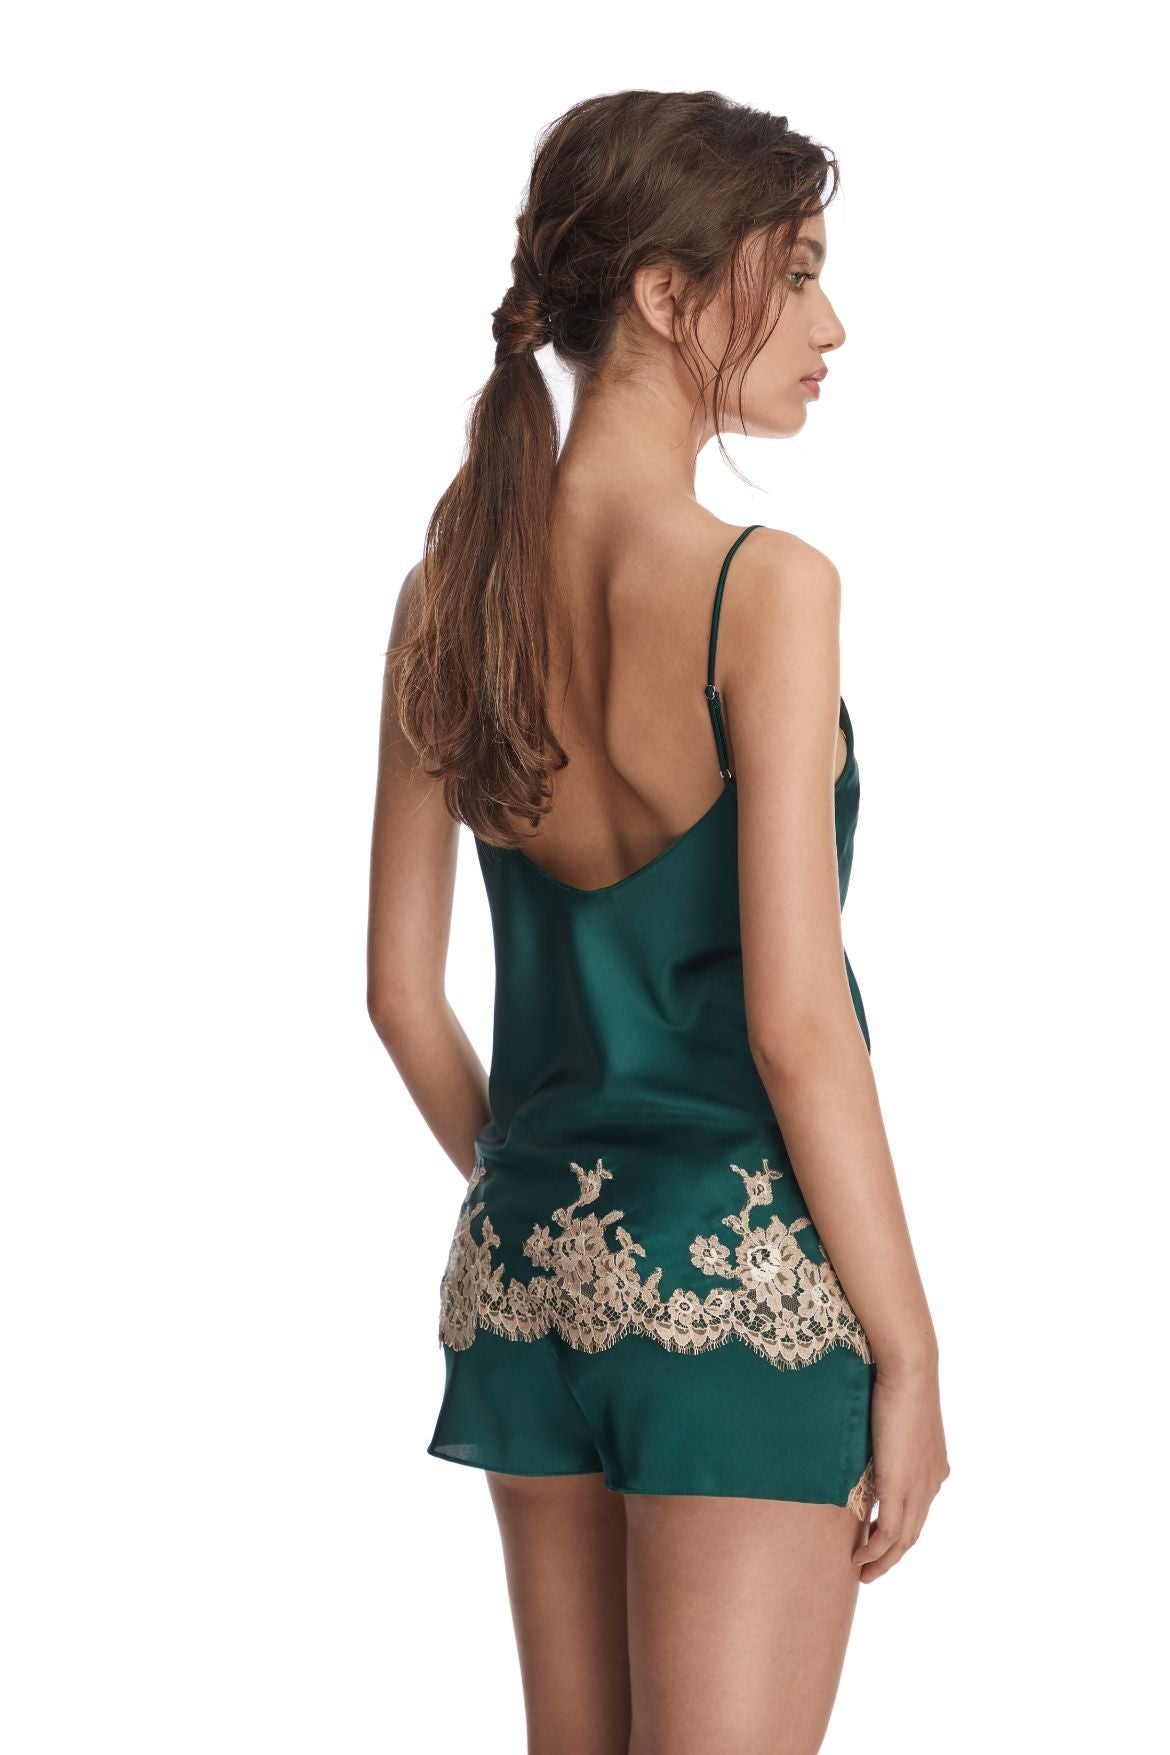 Manhattan Morning Camisole in Emerald/Nude - I.D. Sarrieri